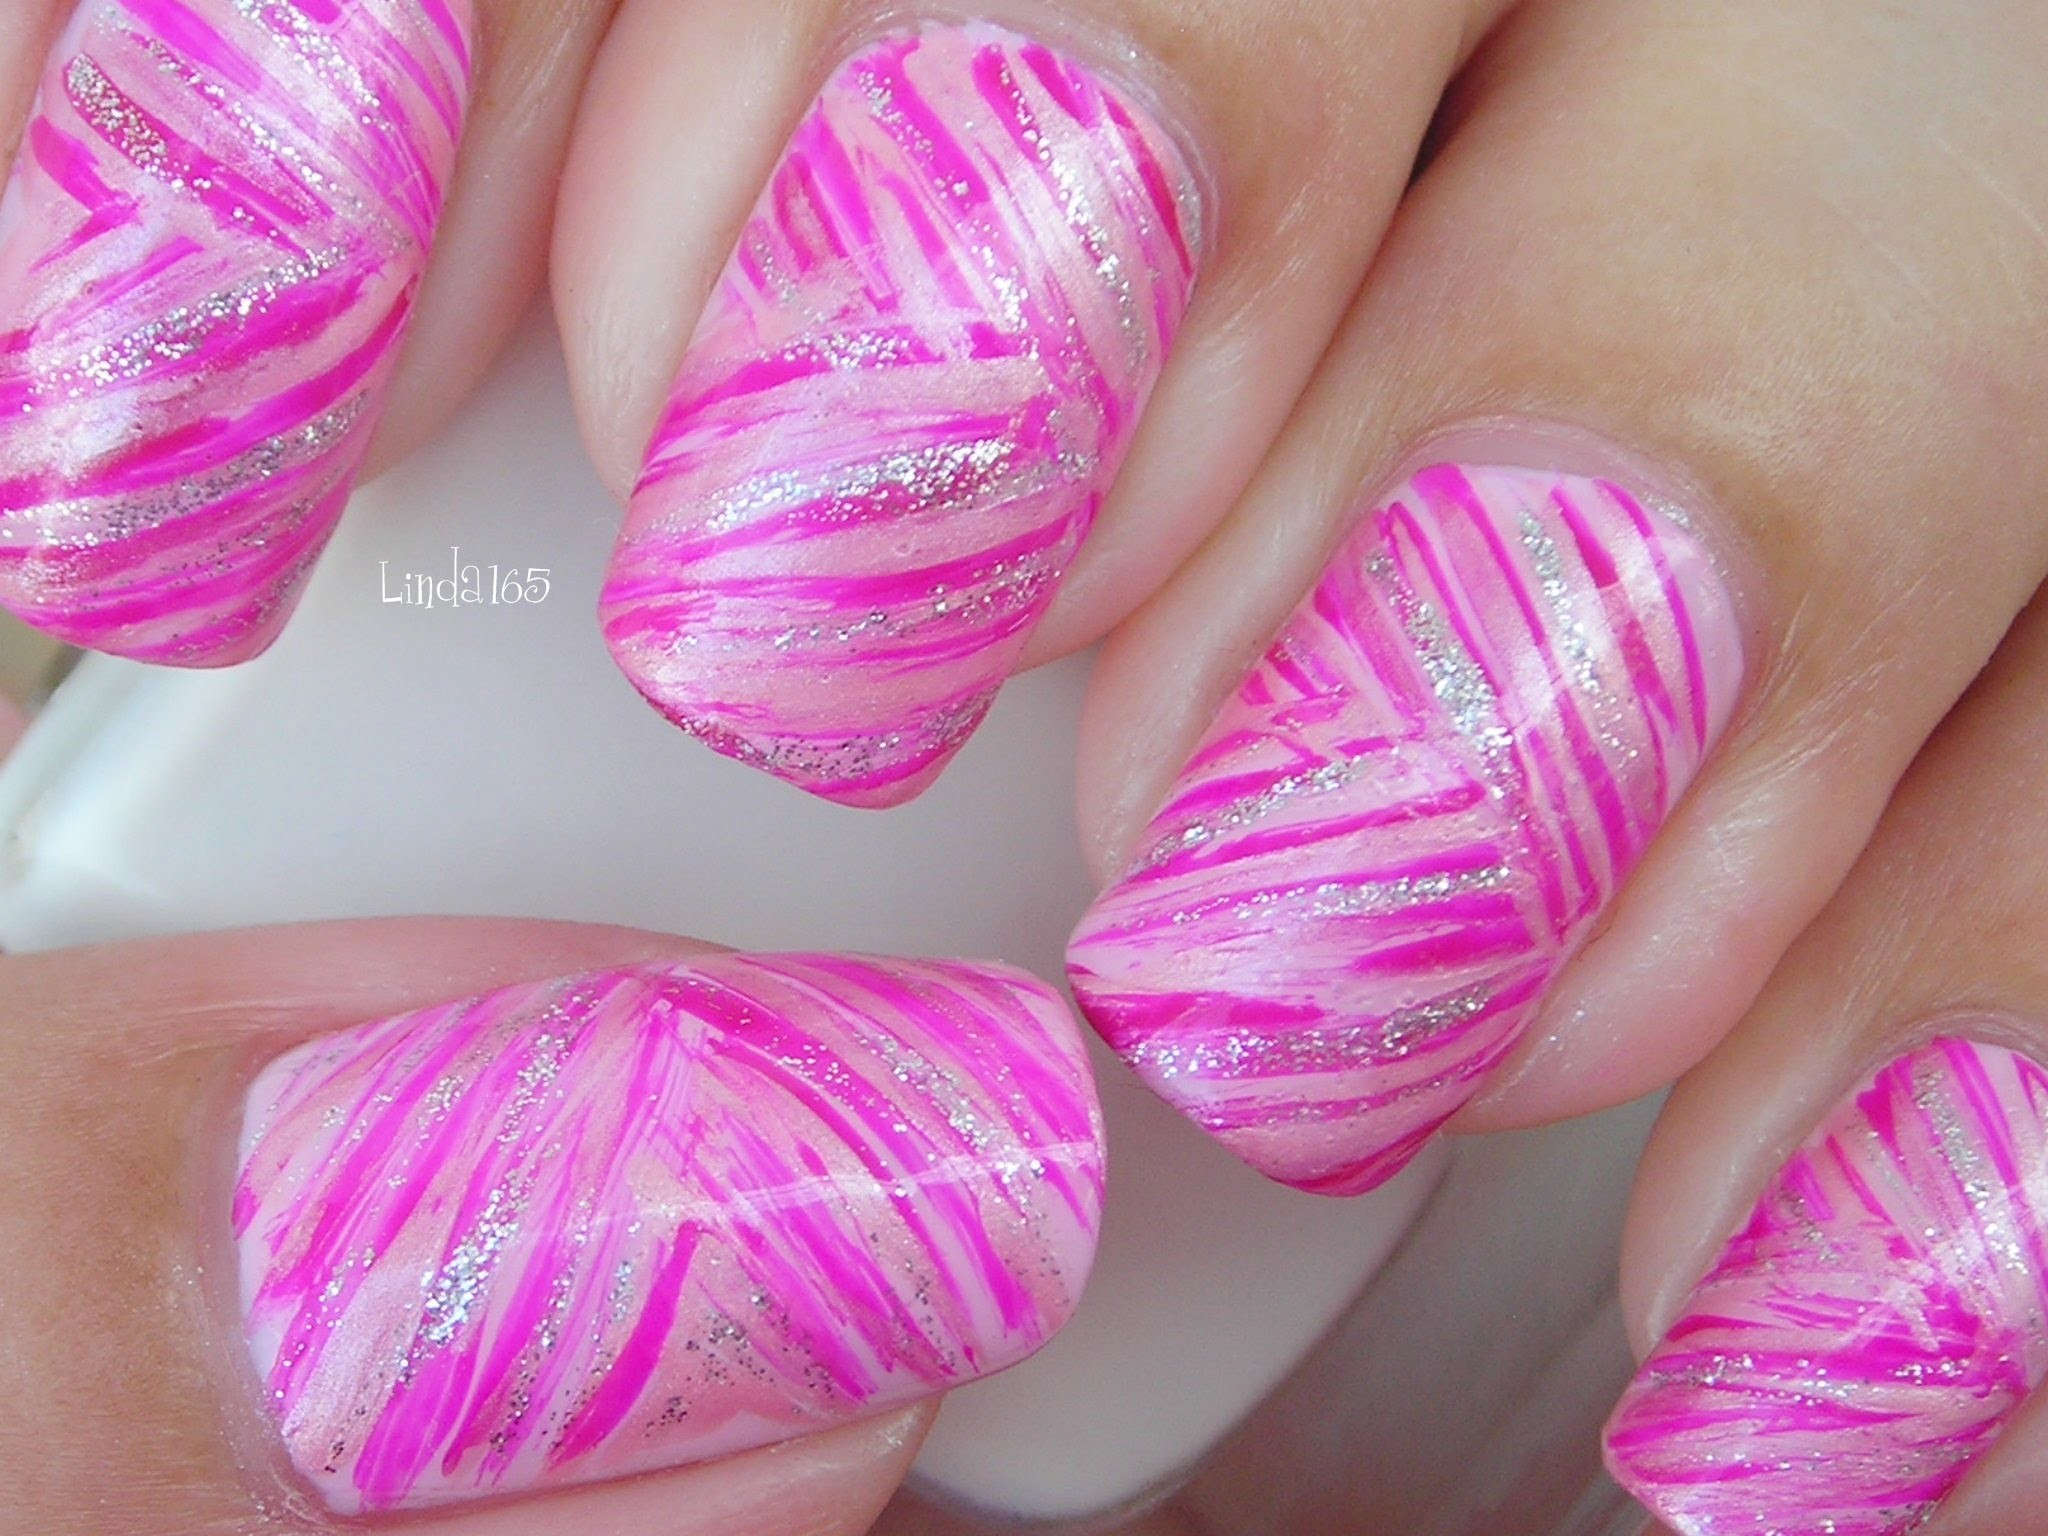 2048x1536 Nail Art - October in Pink: Pink Ribbons - Decoración de uñas - Breast  Cancer Awareness Month - YouTube